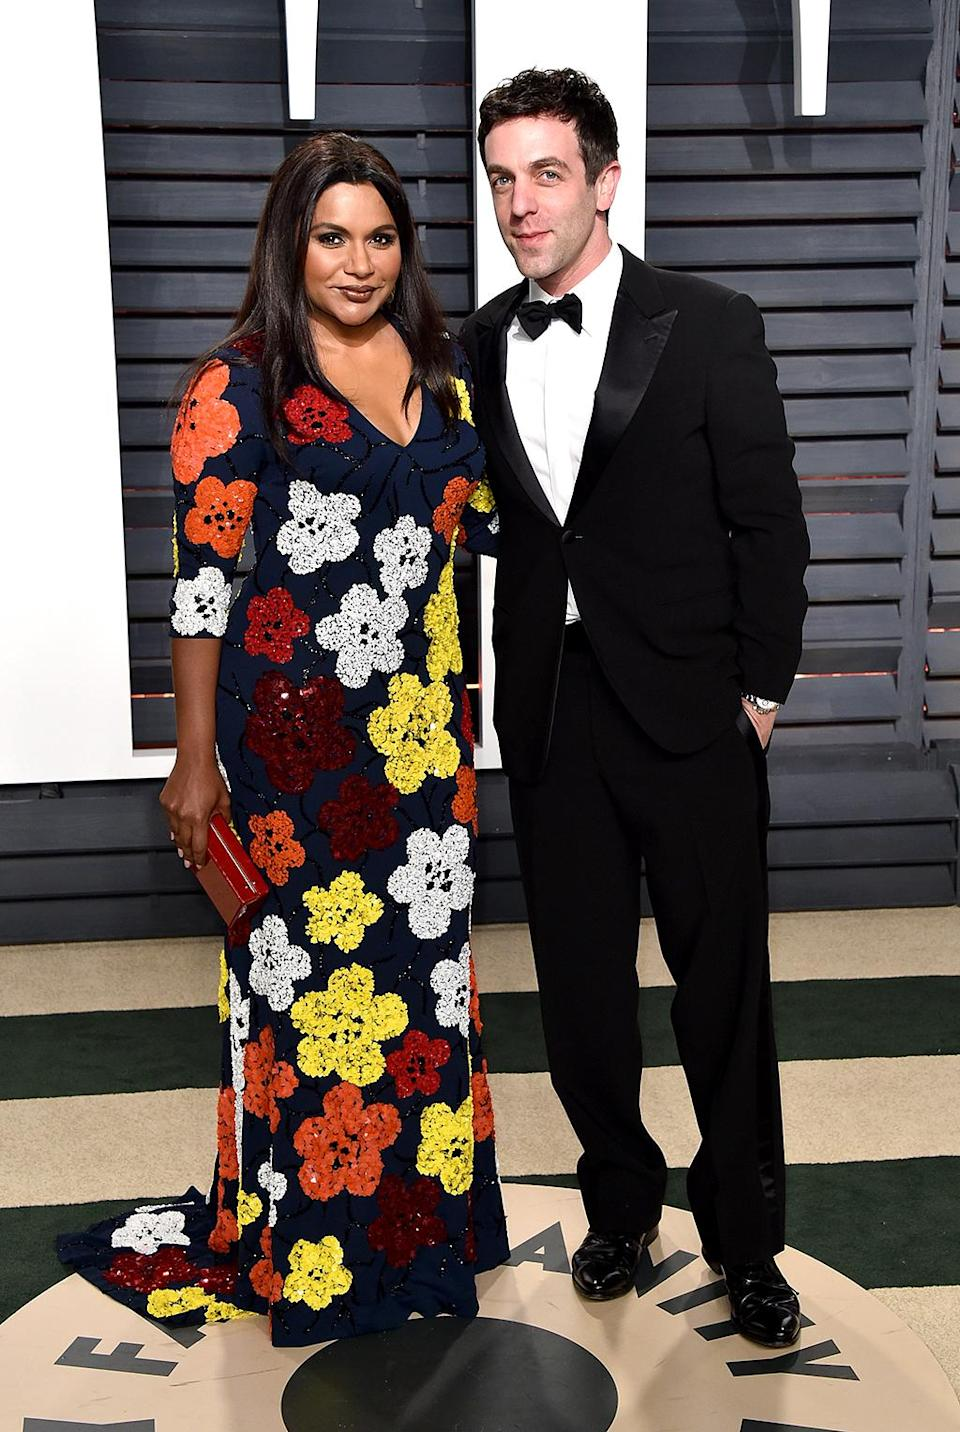 <p>Mindy Kaling and B. J. Novak attend the 2017 Vanity Fair Oscar Party hosted by Graydon Carter at Wallis Annenberg Center for the Performing Arts on February 26, 2017 in Beverly Hills, California. (Photo by John Shearer/Getty Images) </p>